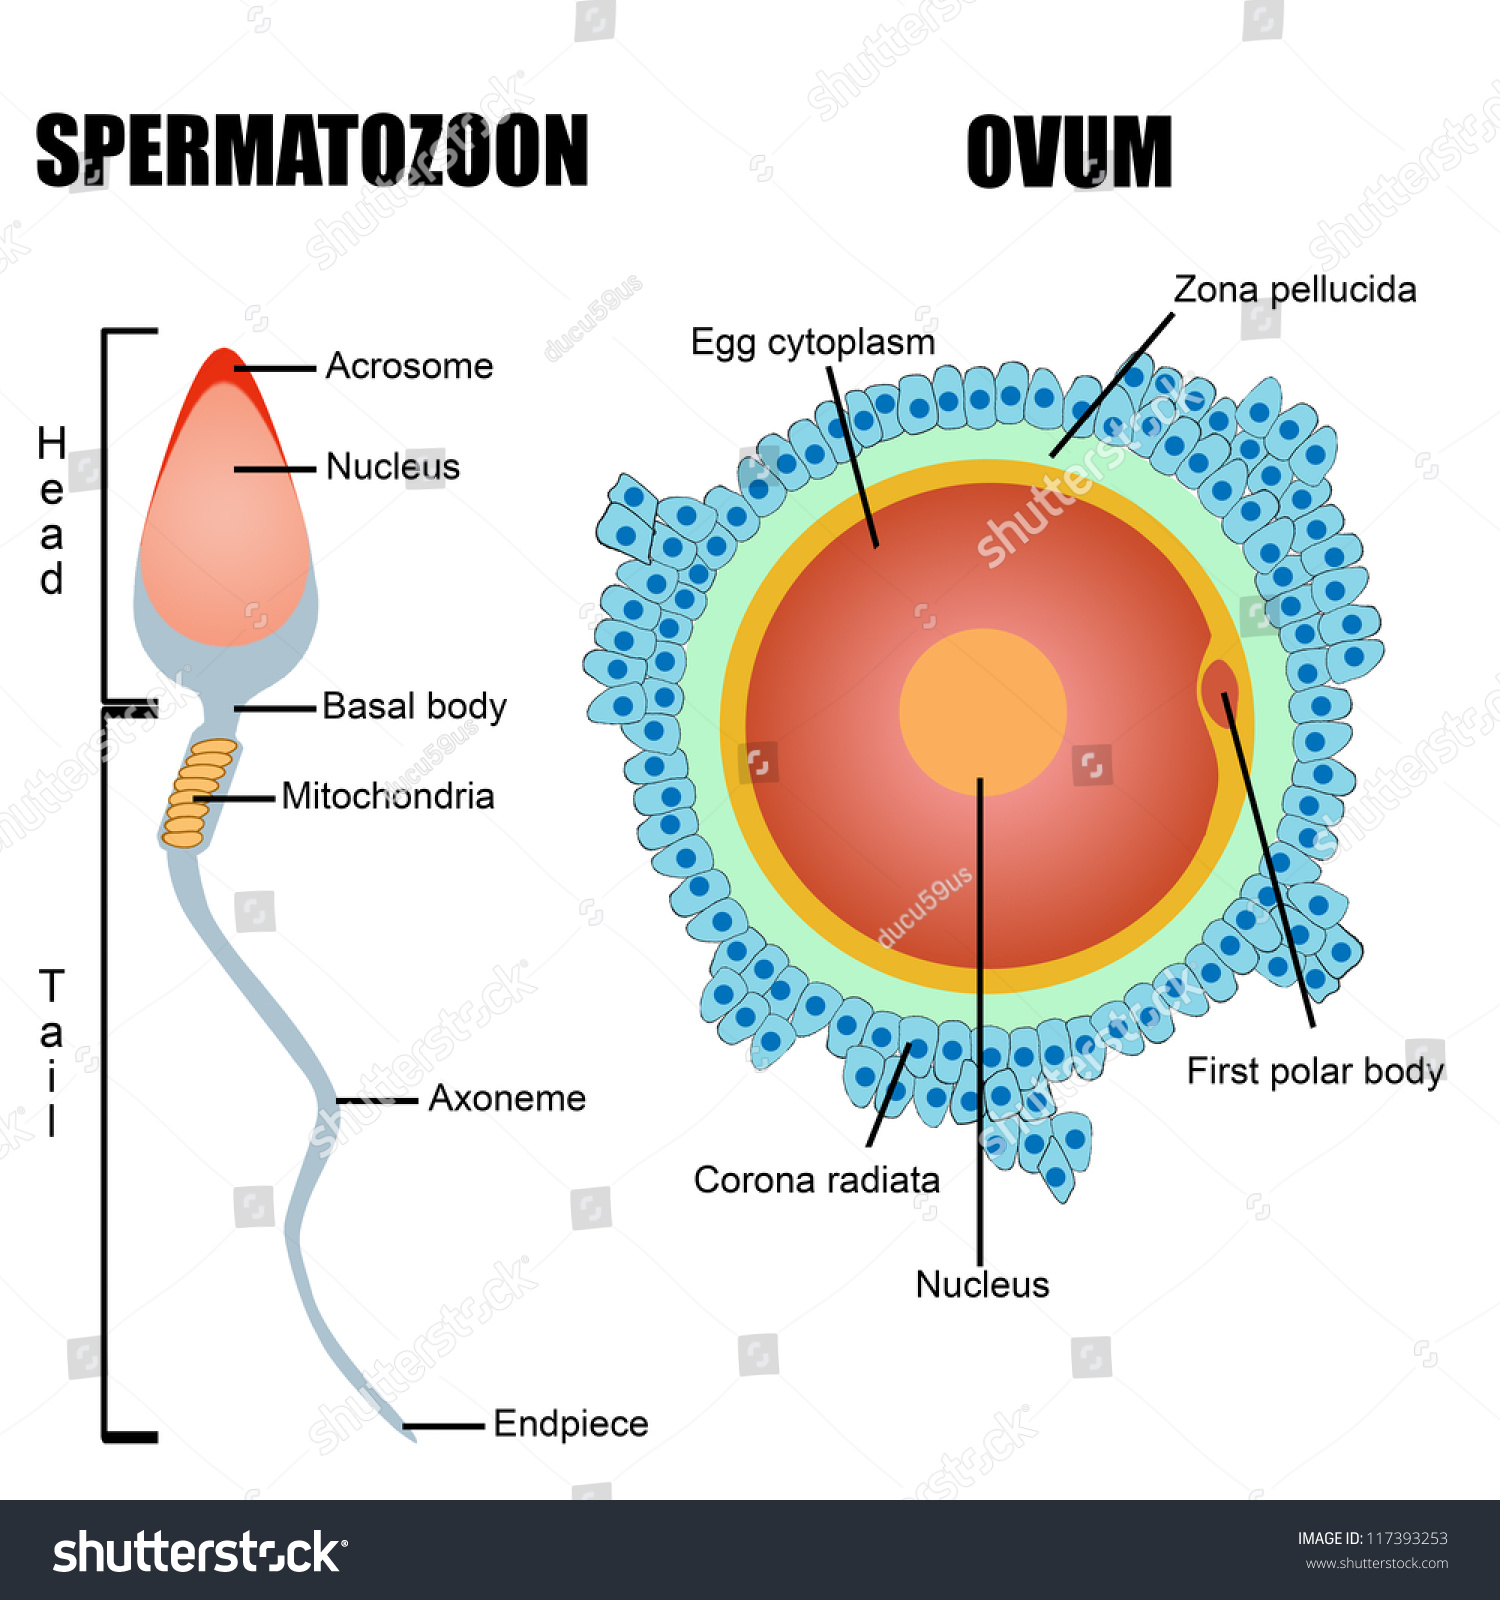 Human egg and sperm are similar